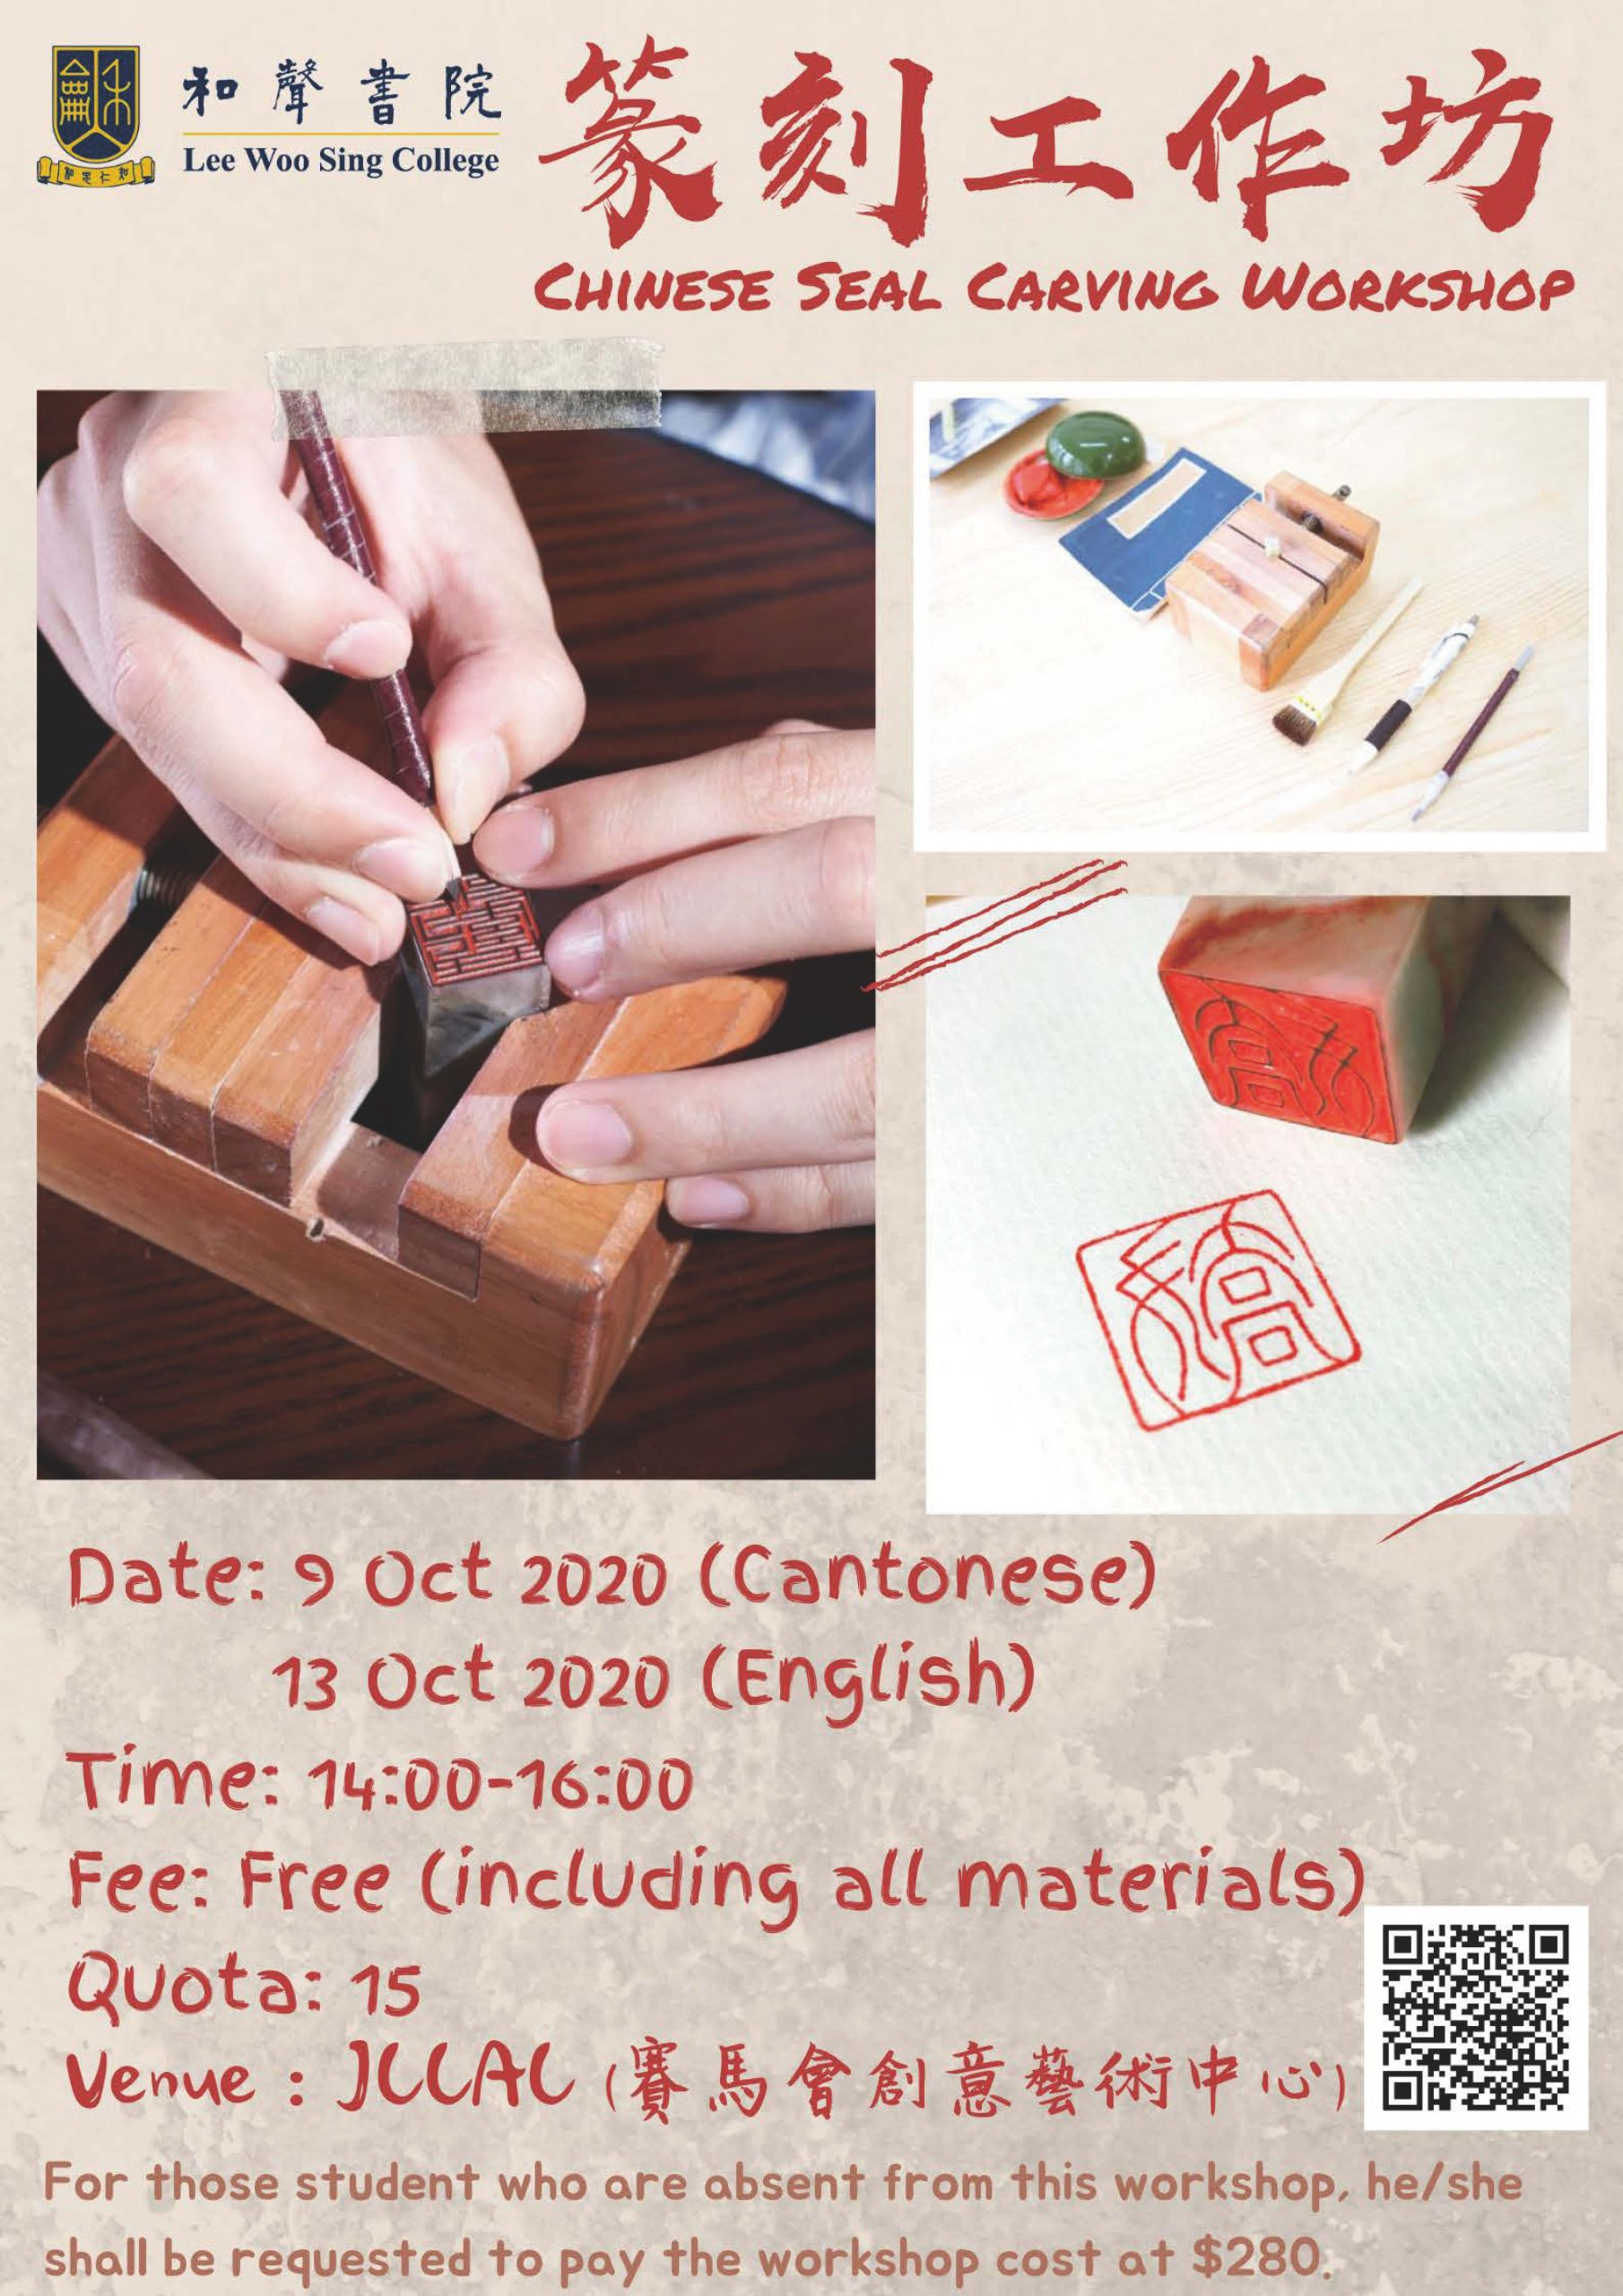 Chinese Seal Carving Workshop 篆刻工作坊